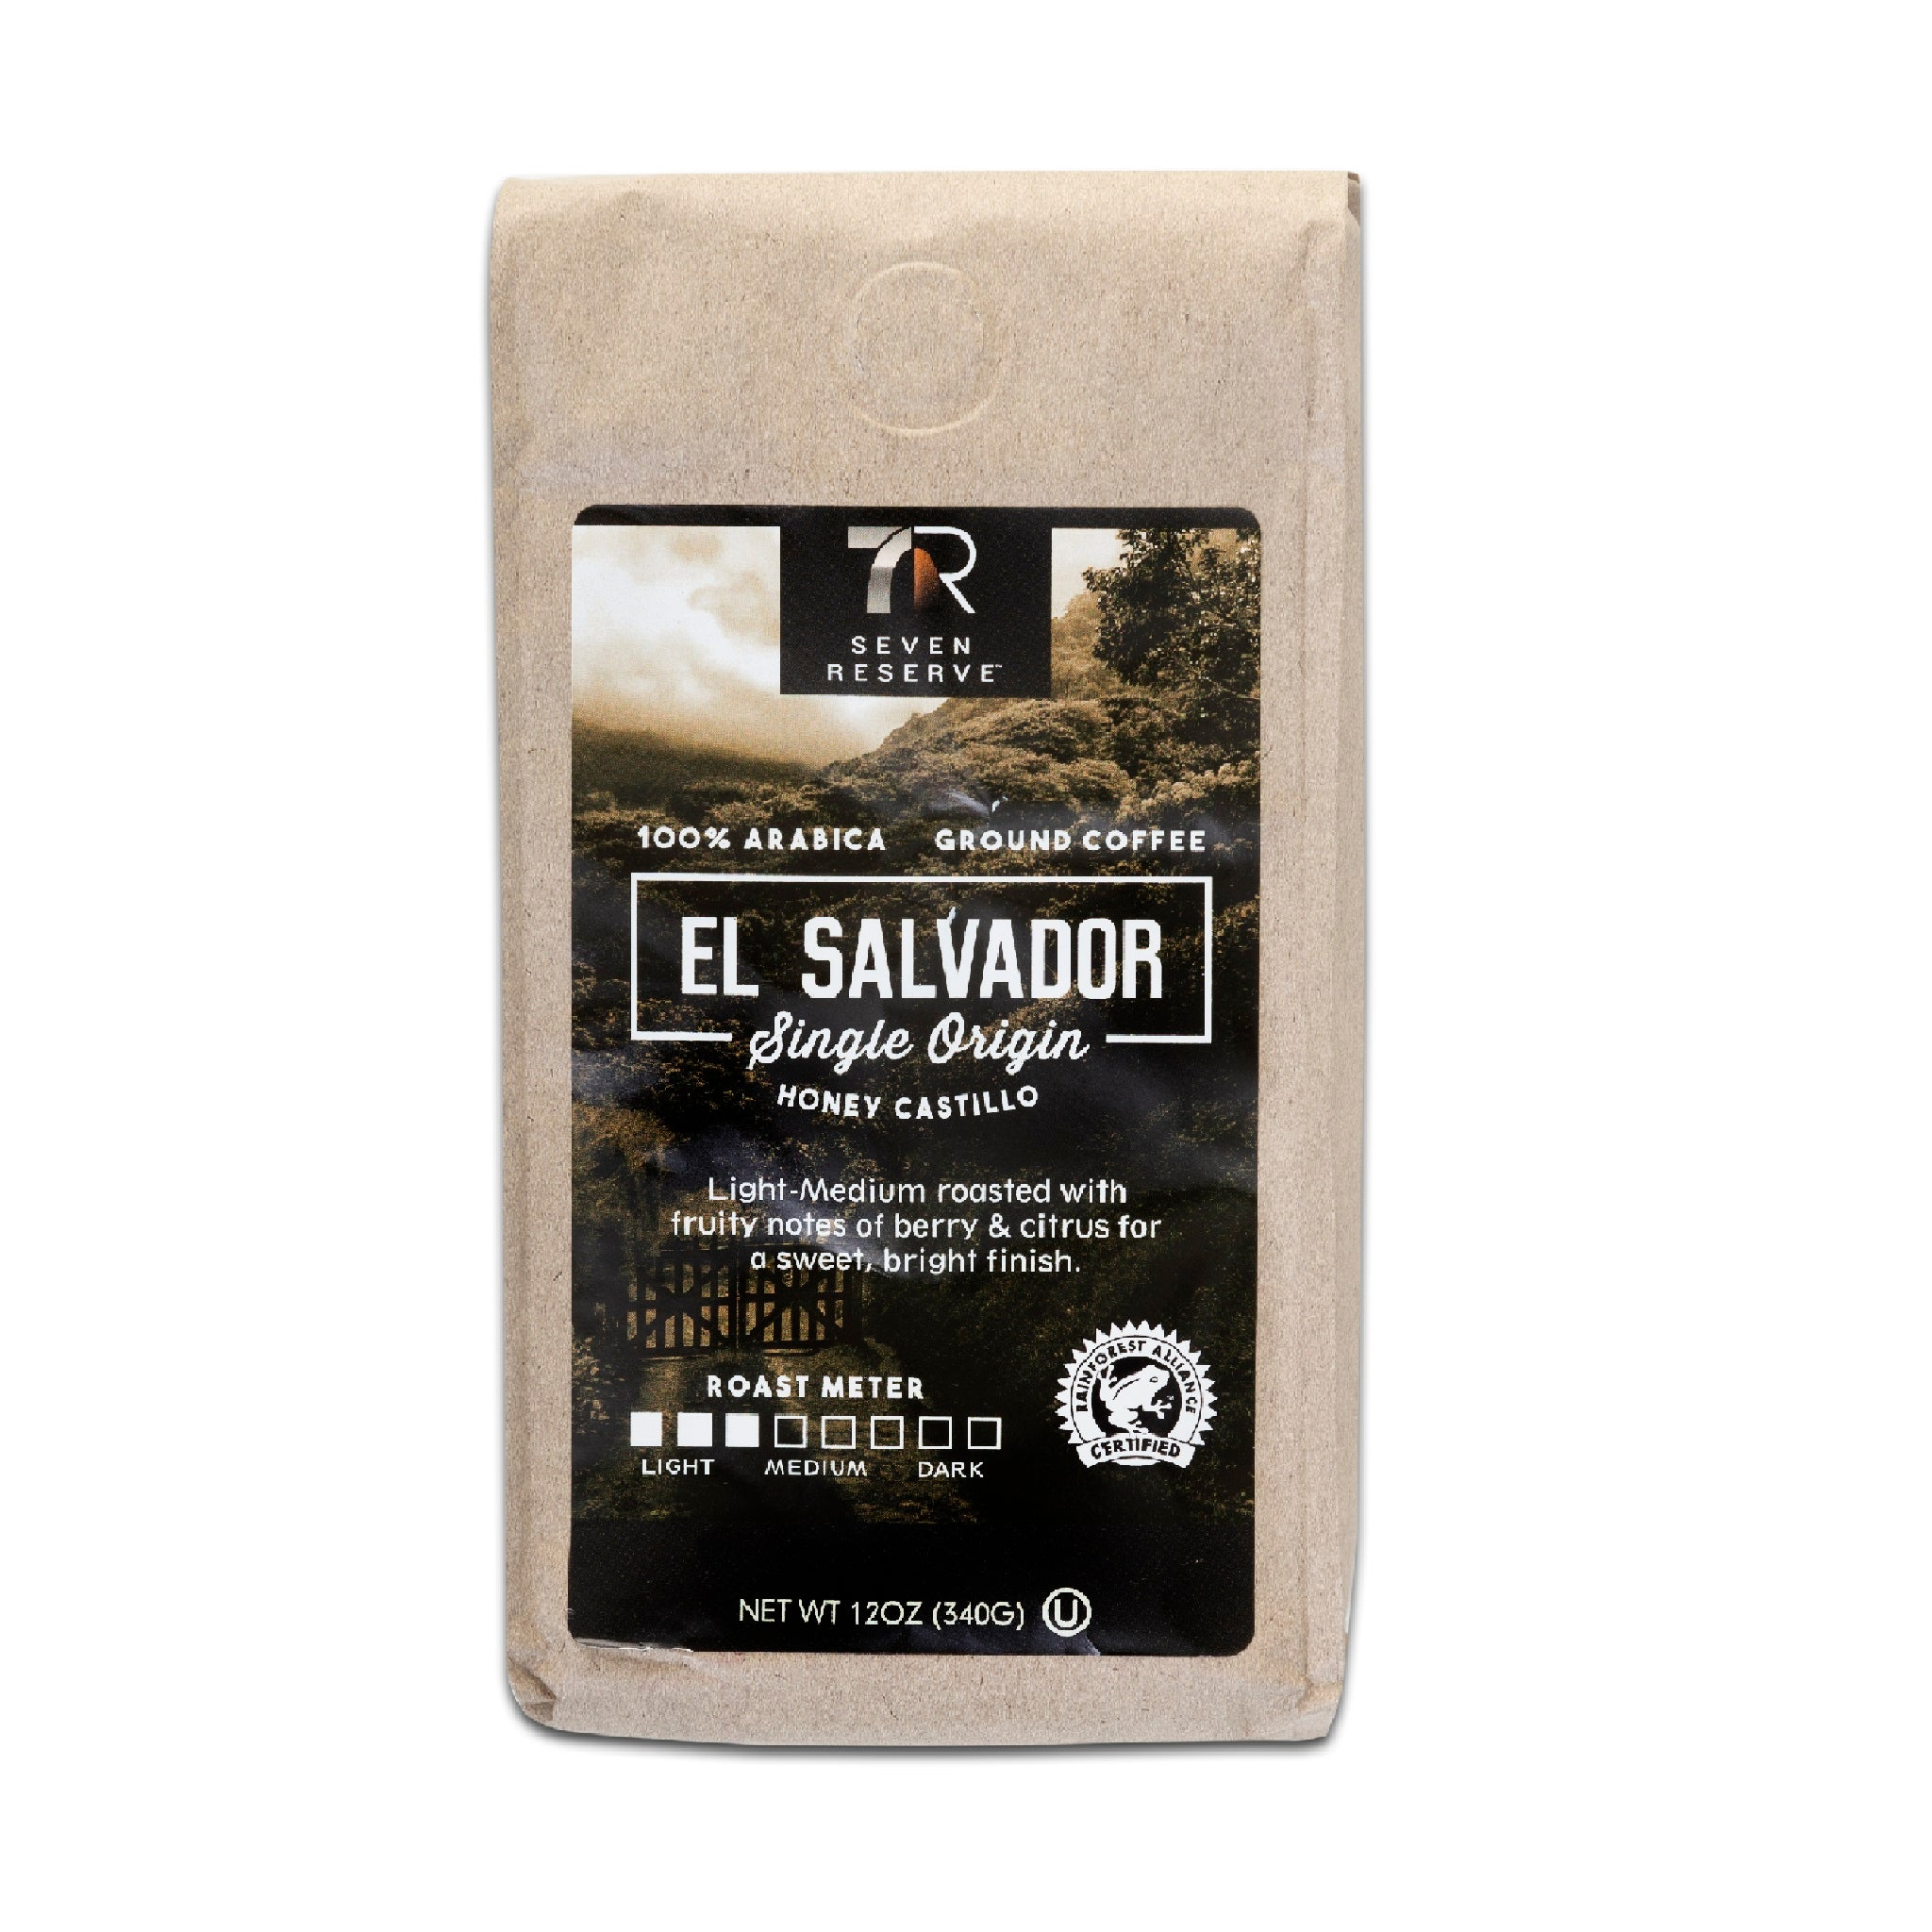 7-Eleven 7Reserve El Salvador Single Origin Honey Castillo Ground Coffee, 12 oz